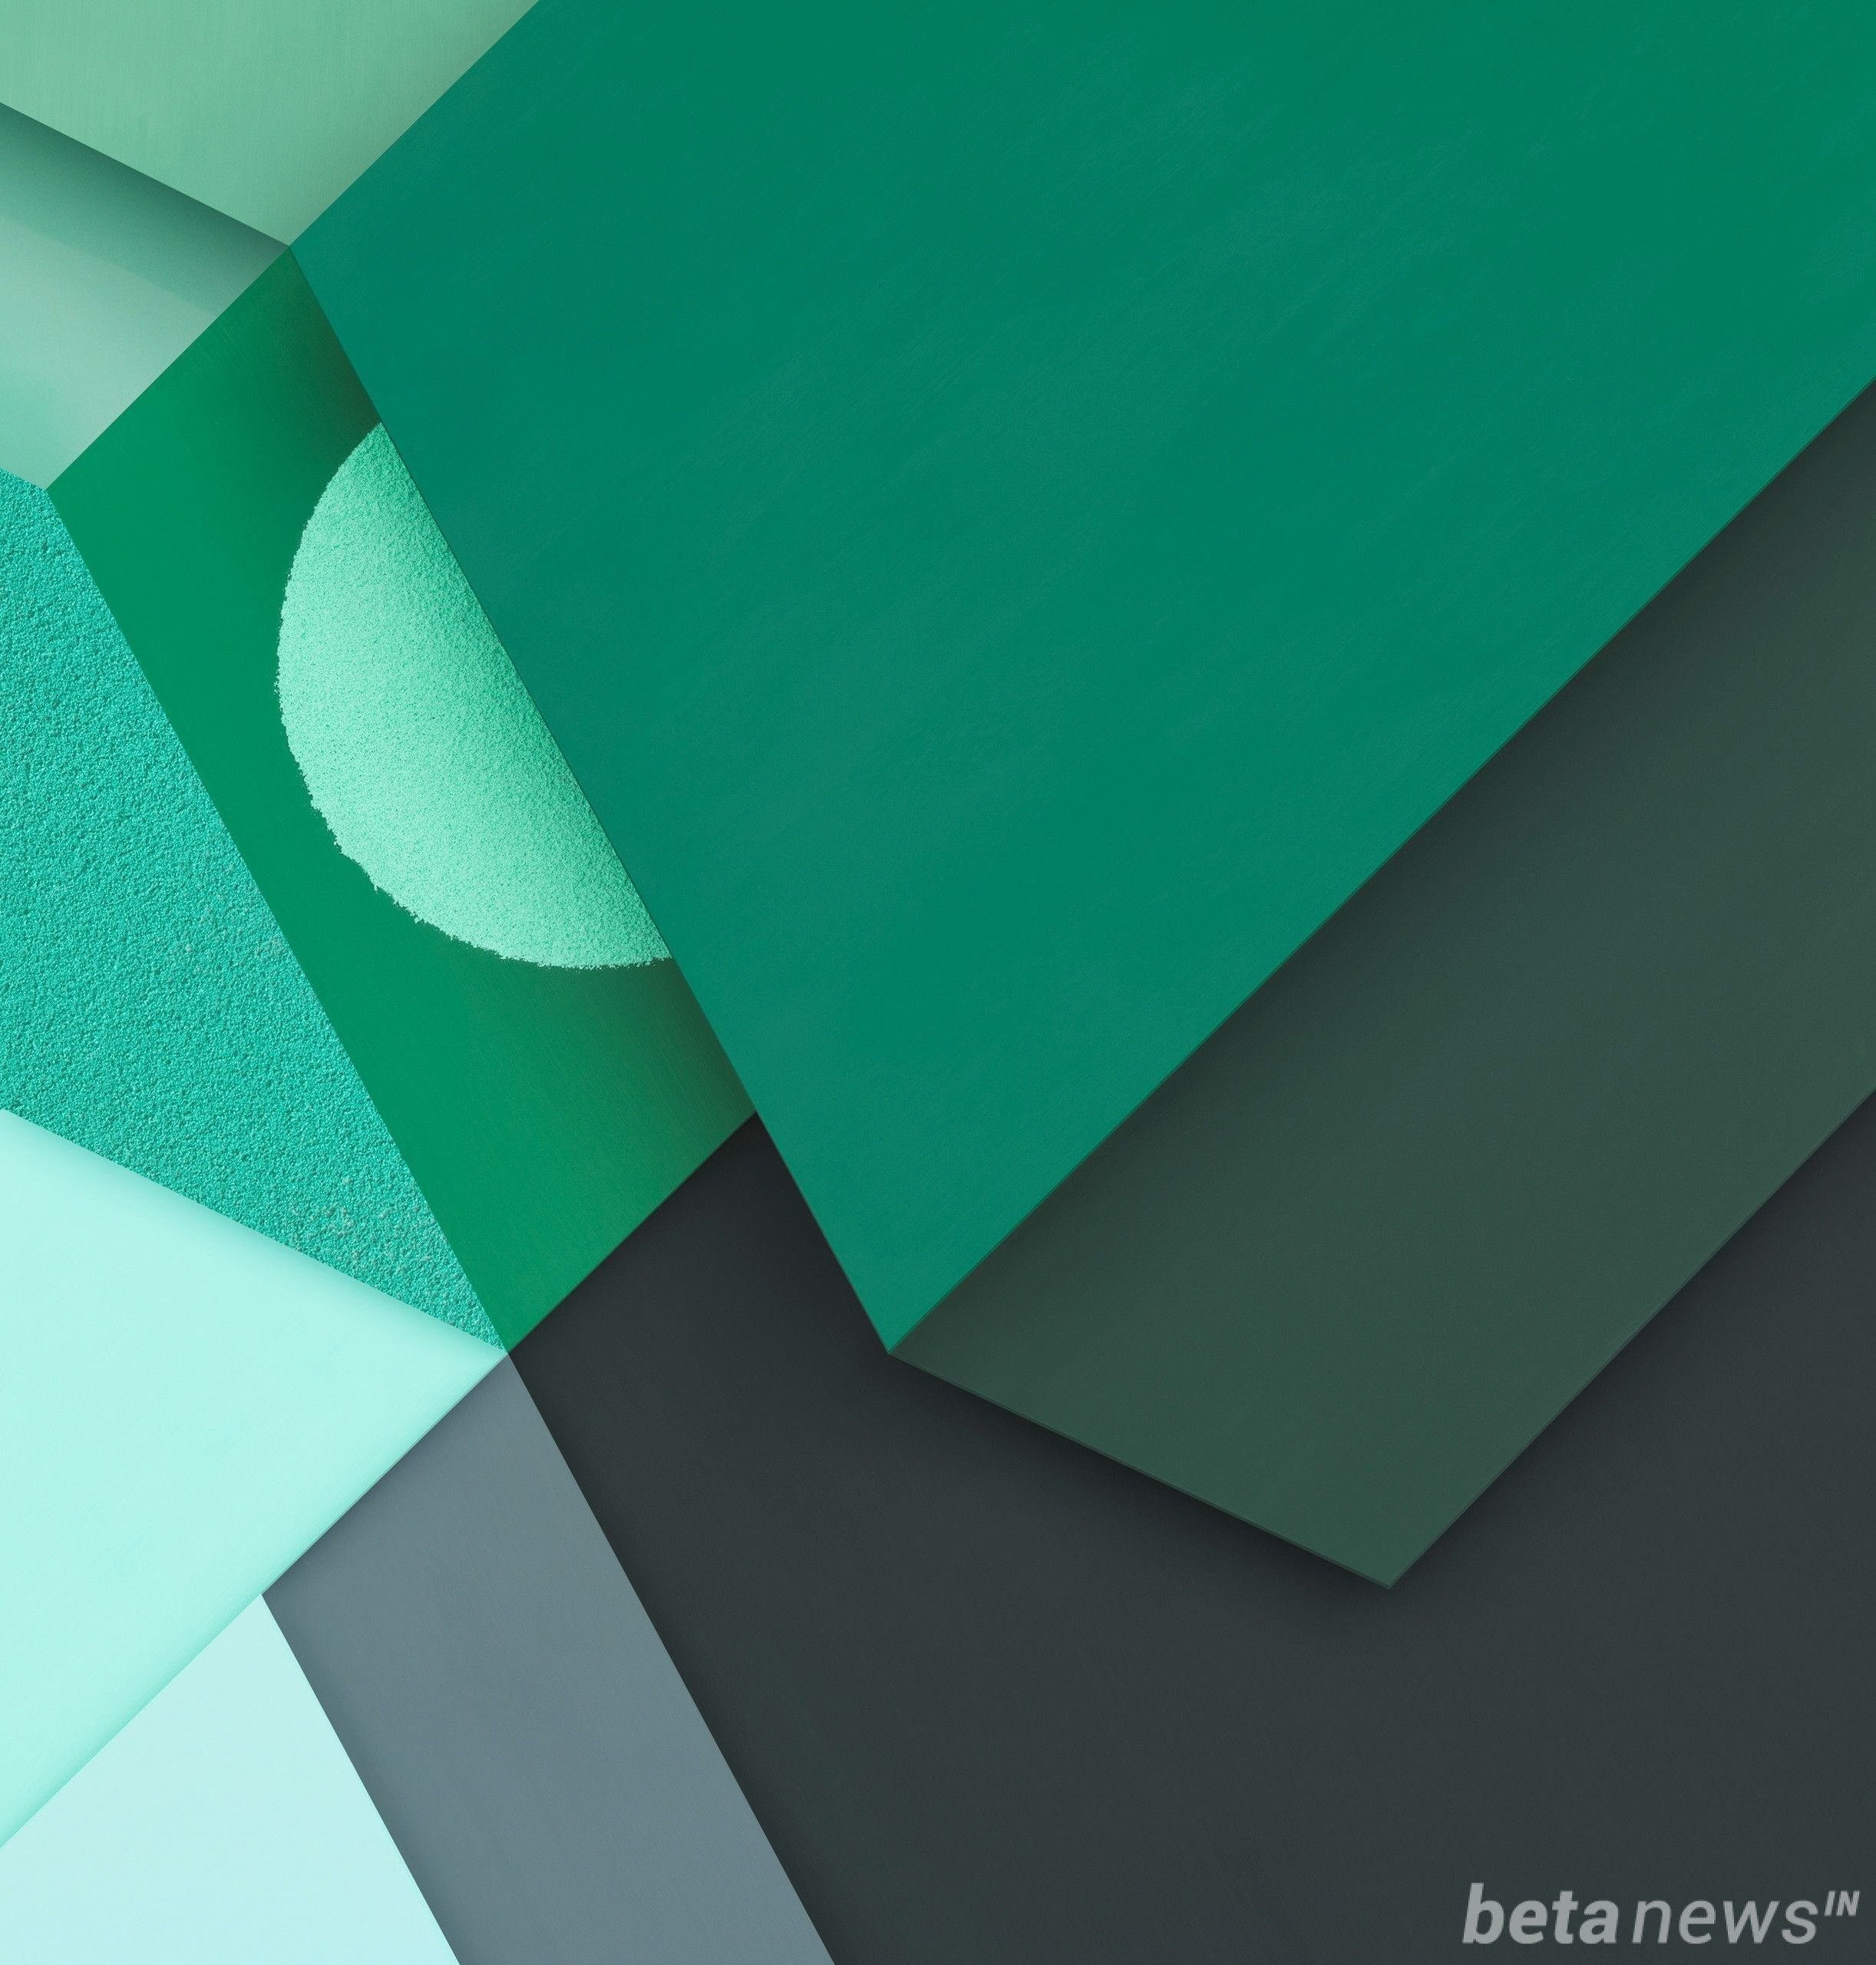 Android 6.0 Marshmallow Stock Wallpapers (betanews.in) 2444x2560